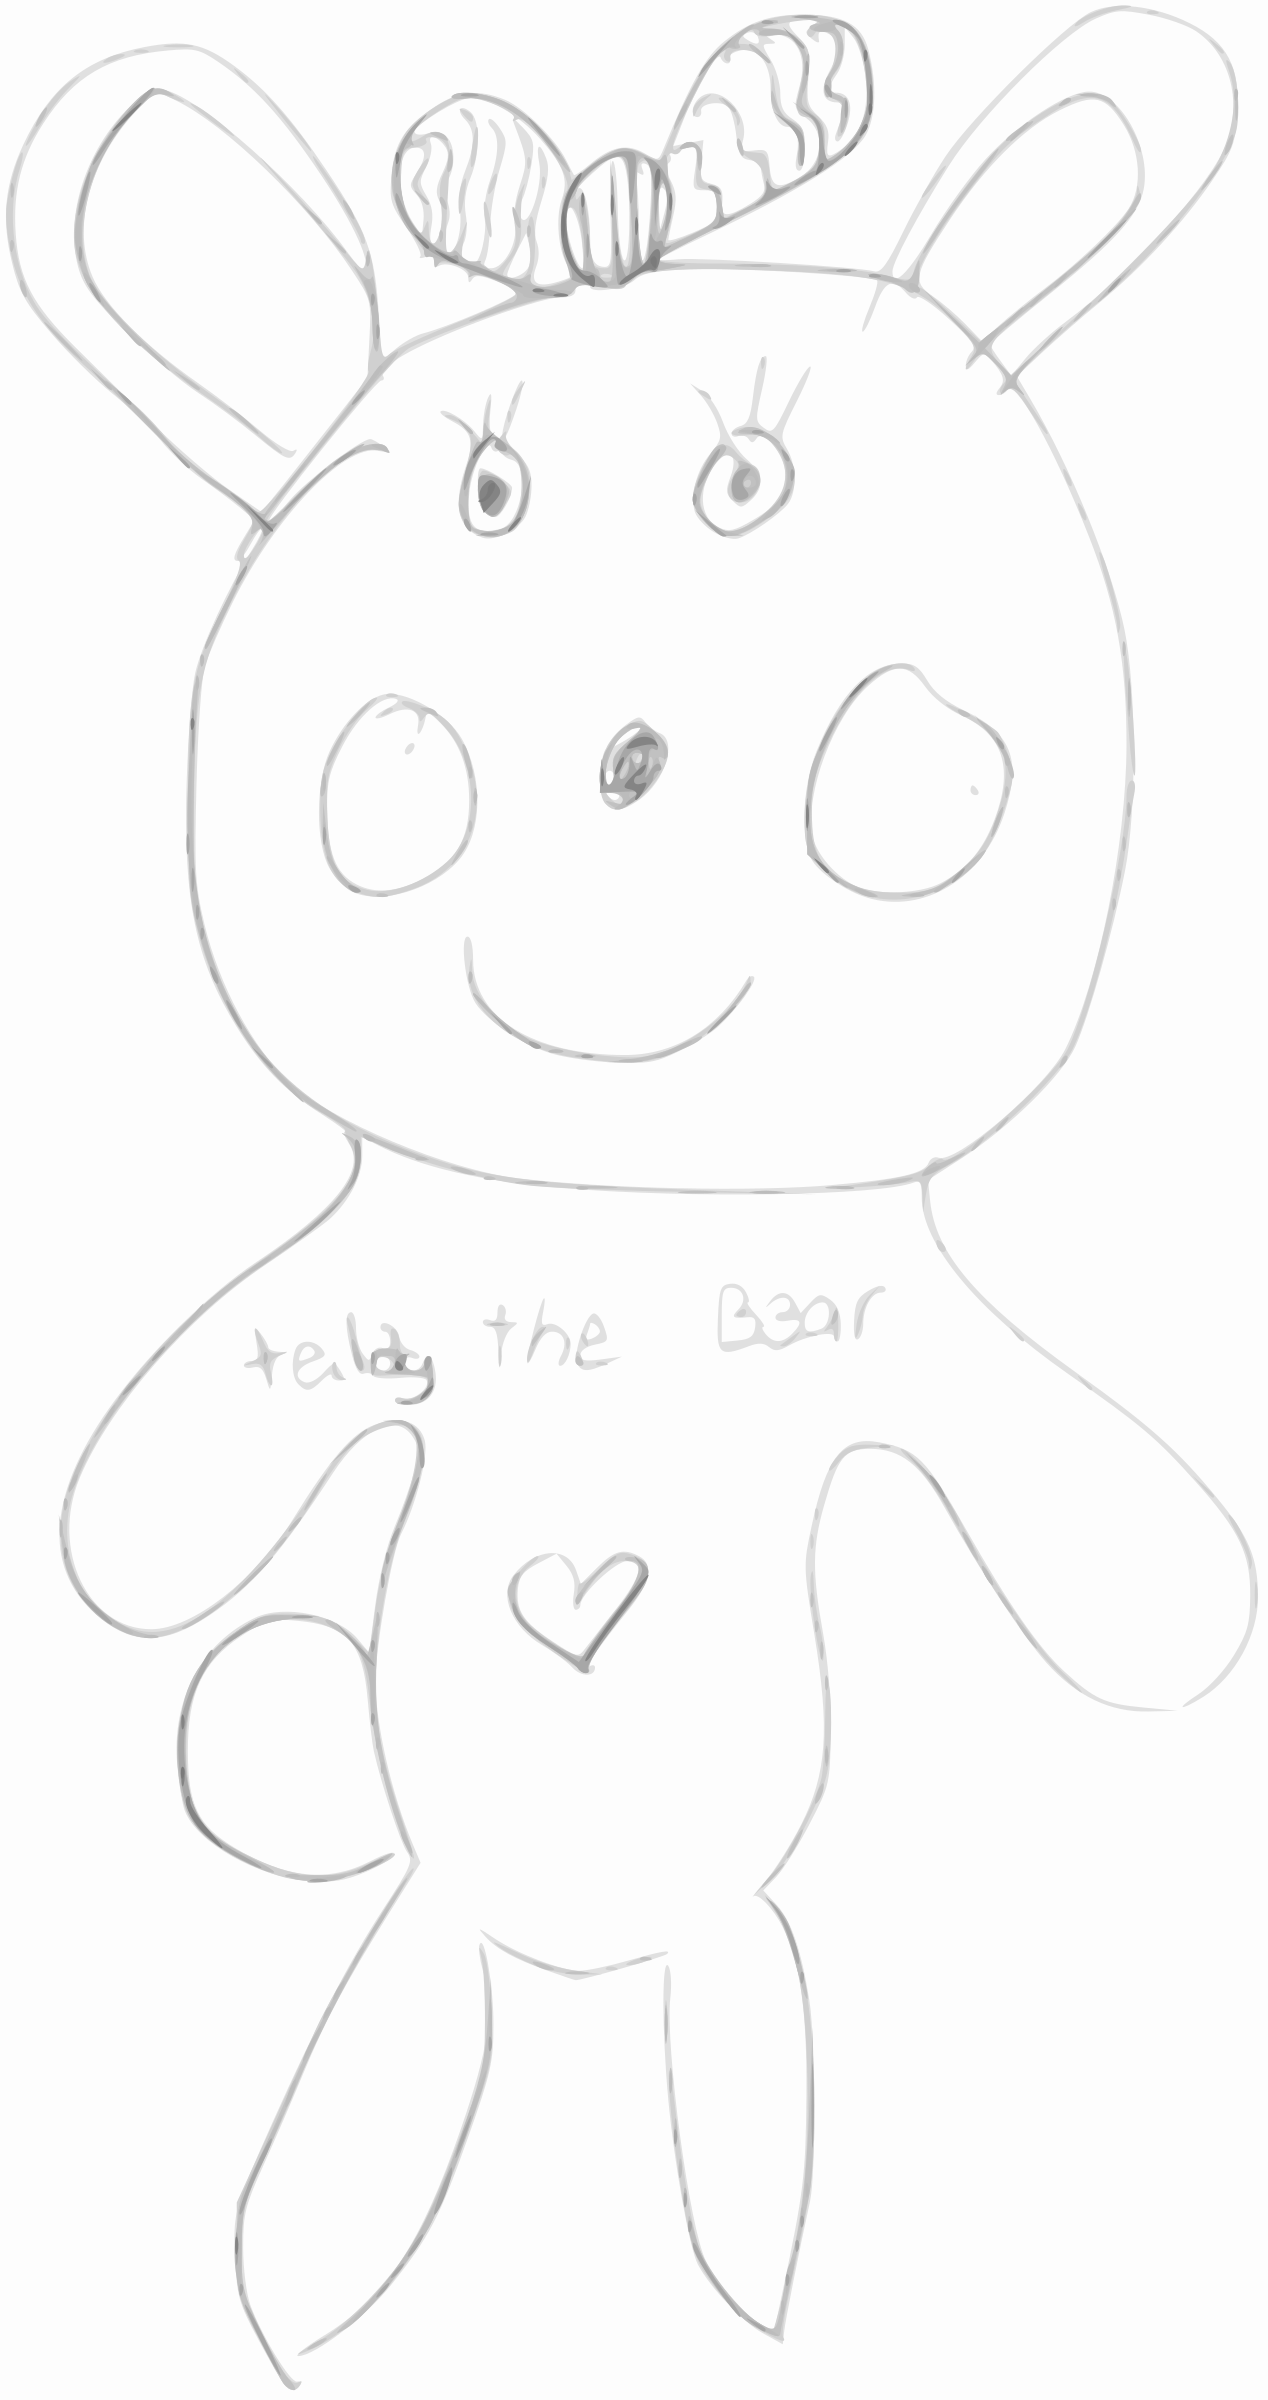 Kindergarten Art Teddy the Bear by BAJ